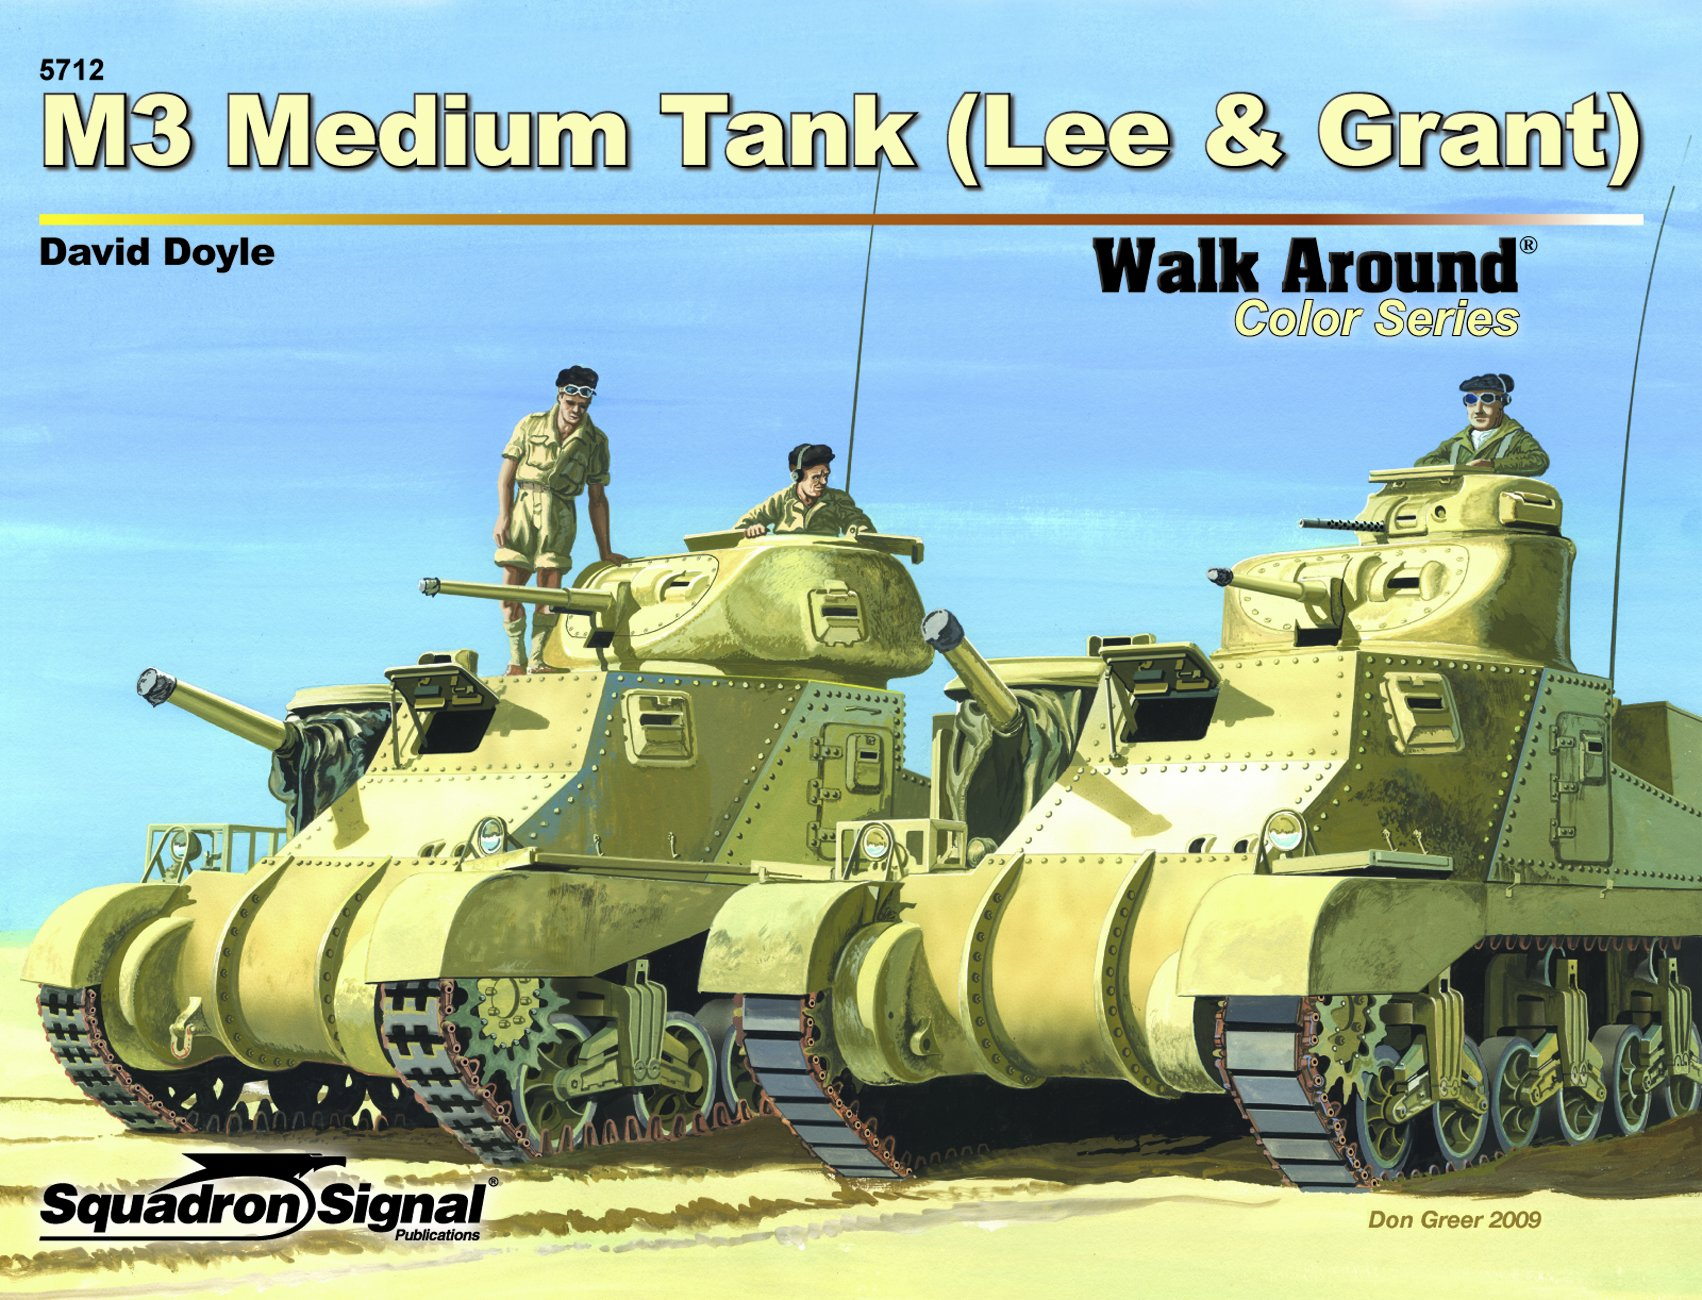 m3 medium tank lee grant armor walk around color series no 12 david doyle 9780897475860 amazoncom books